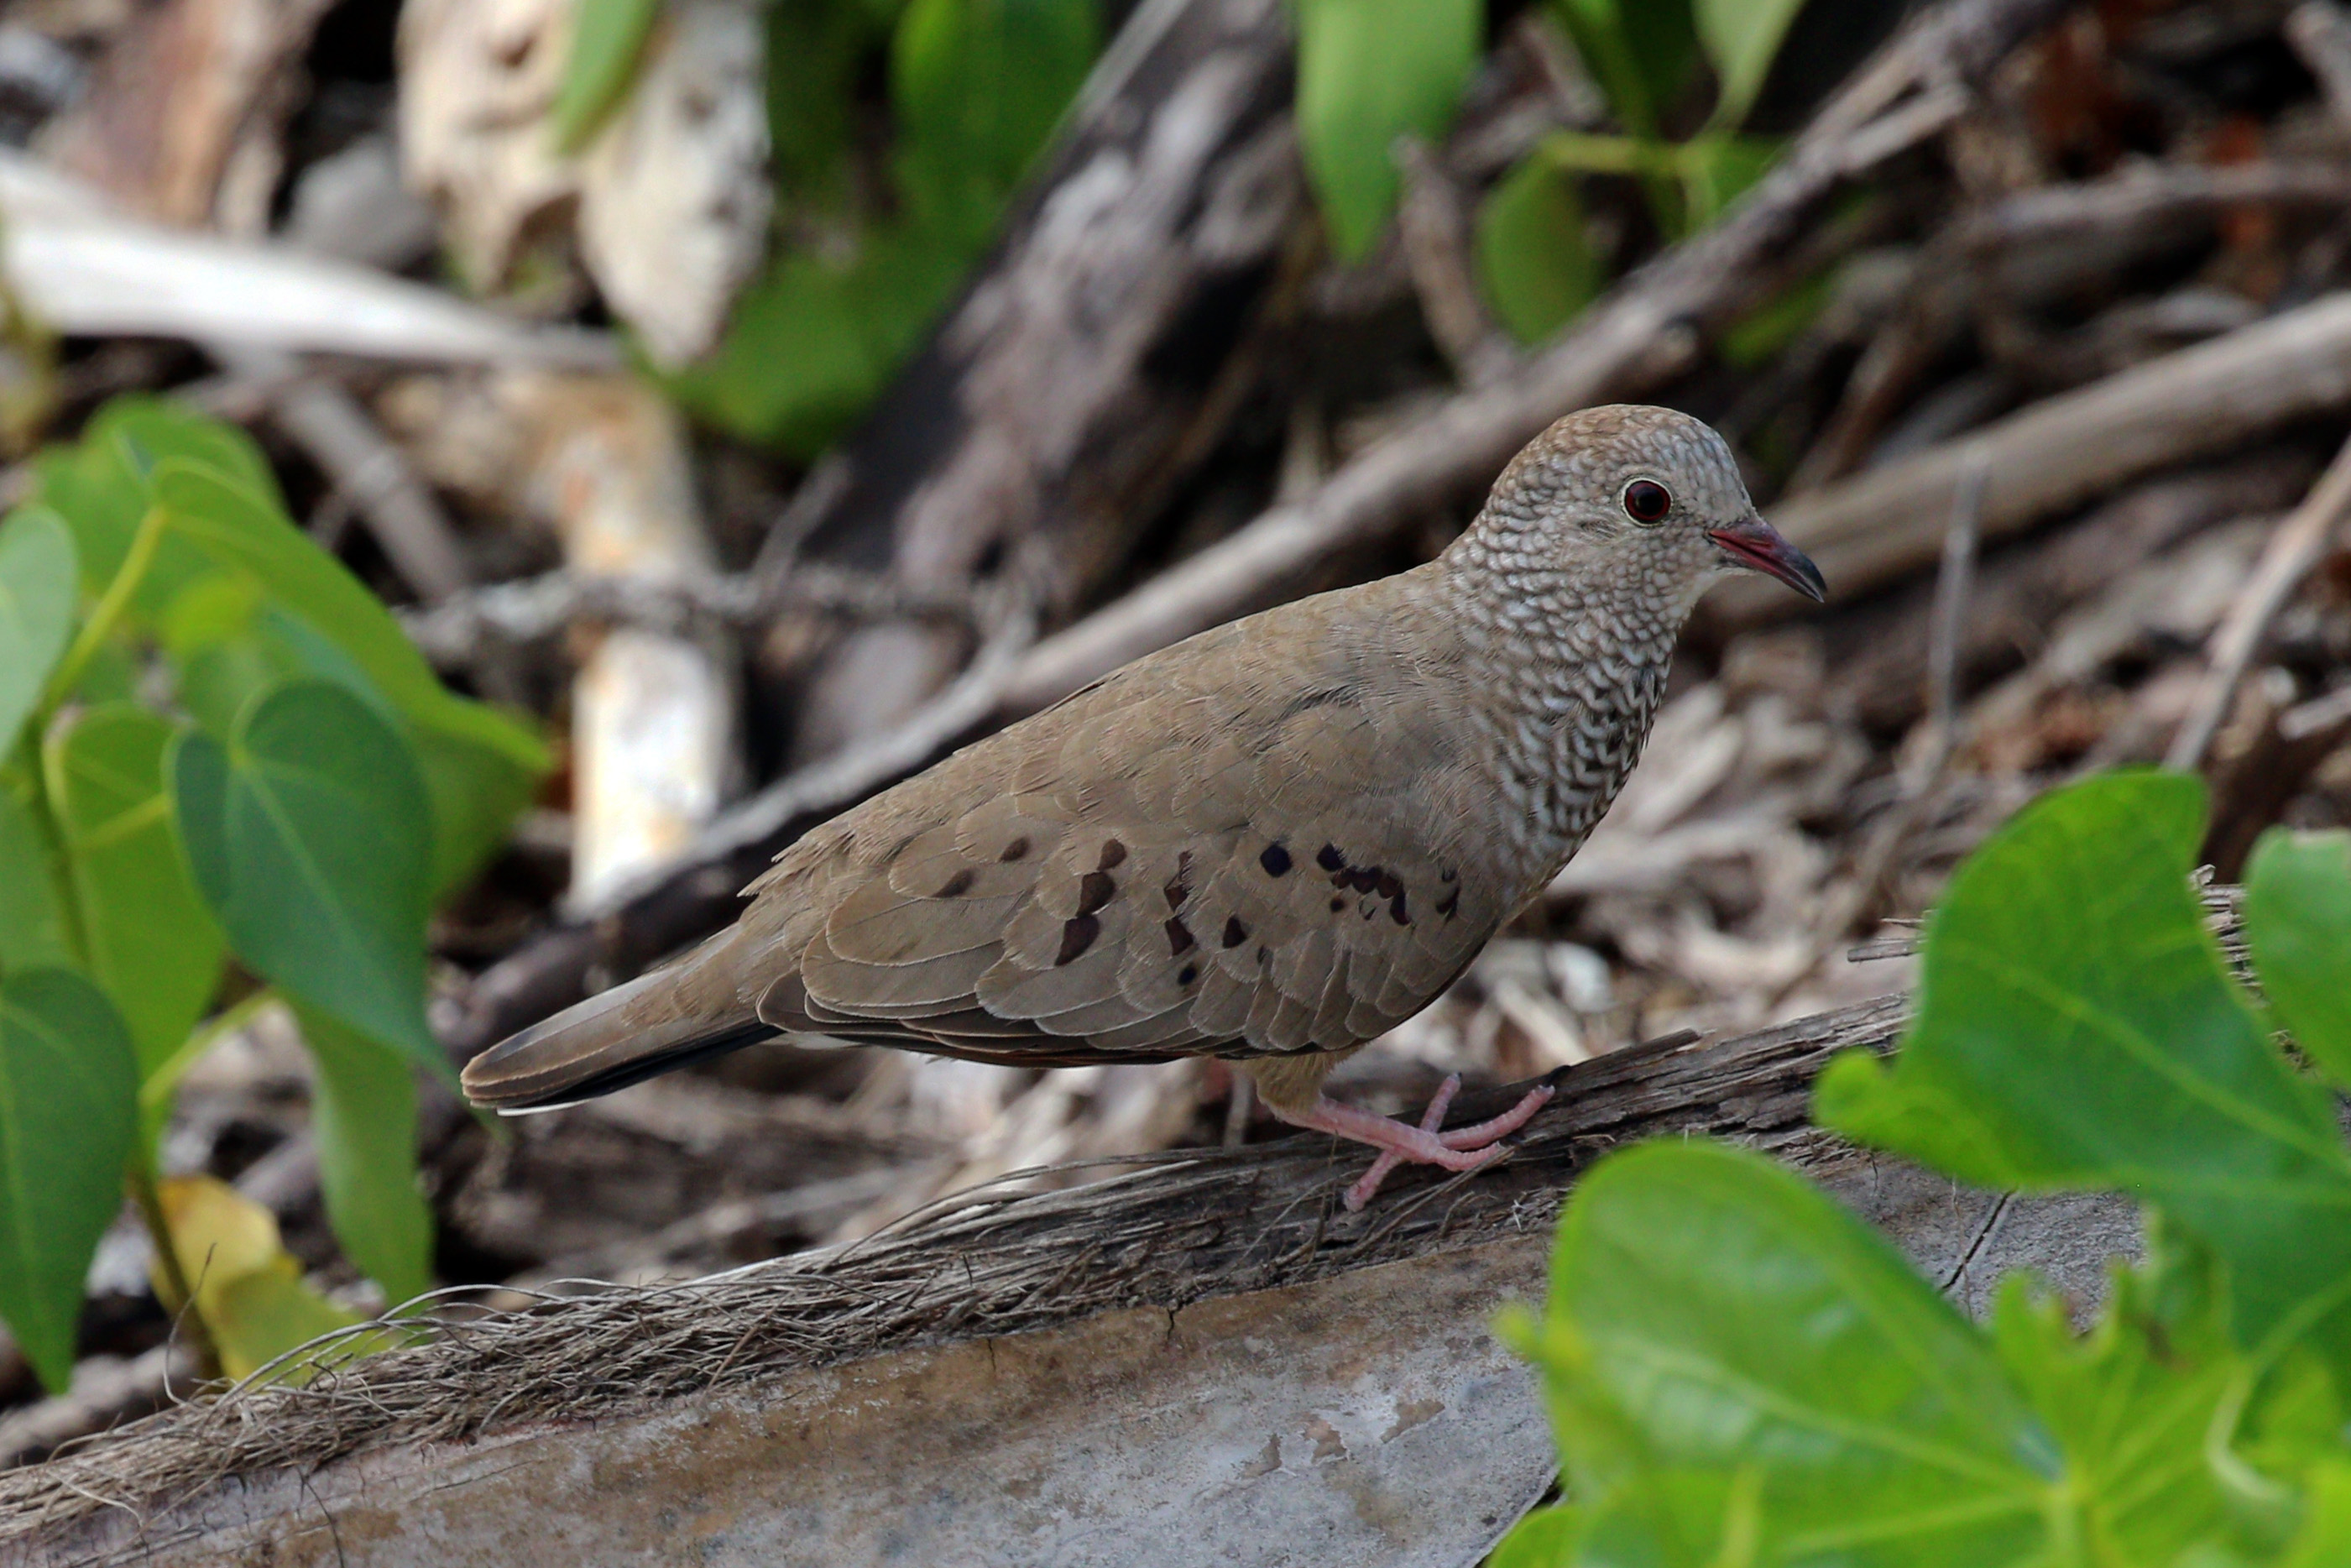 https://upload.wikimedia.org/wikipedia/commons/4/4f/Common_ground_dove_%28Colombina_passerina%29_female.JPG